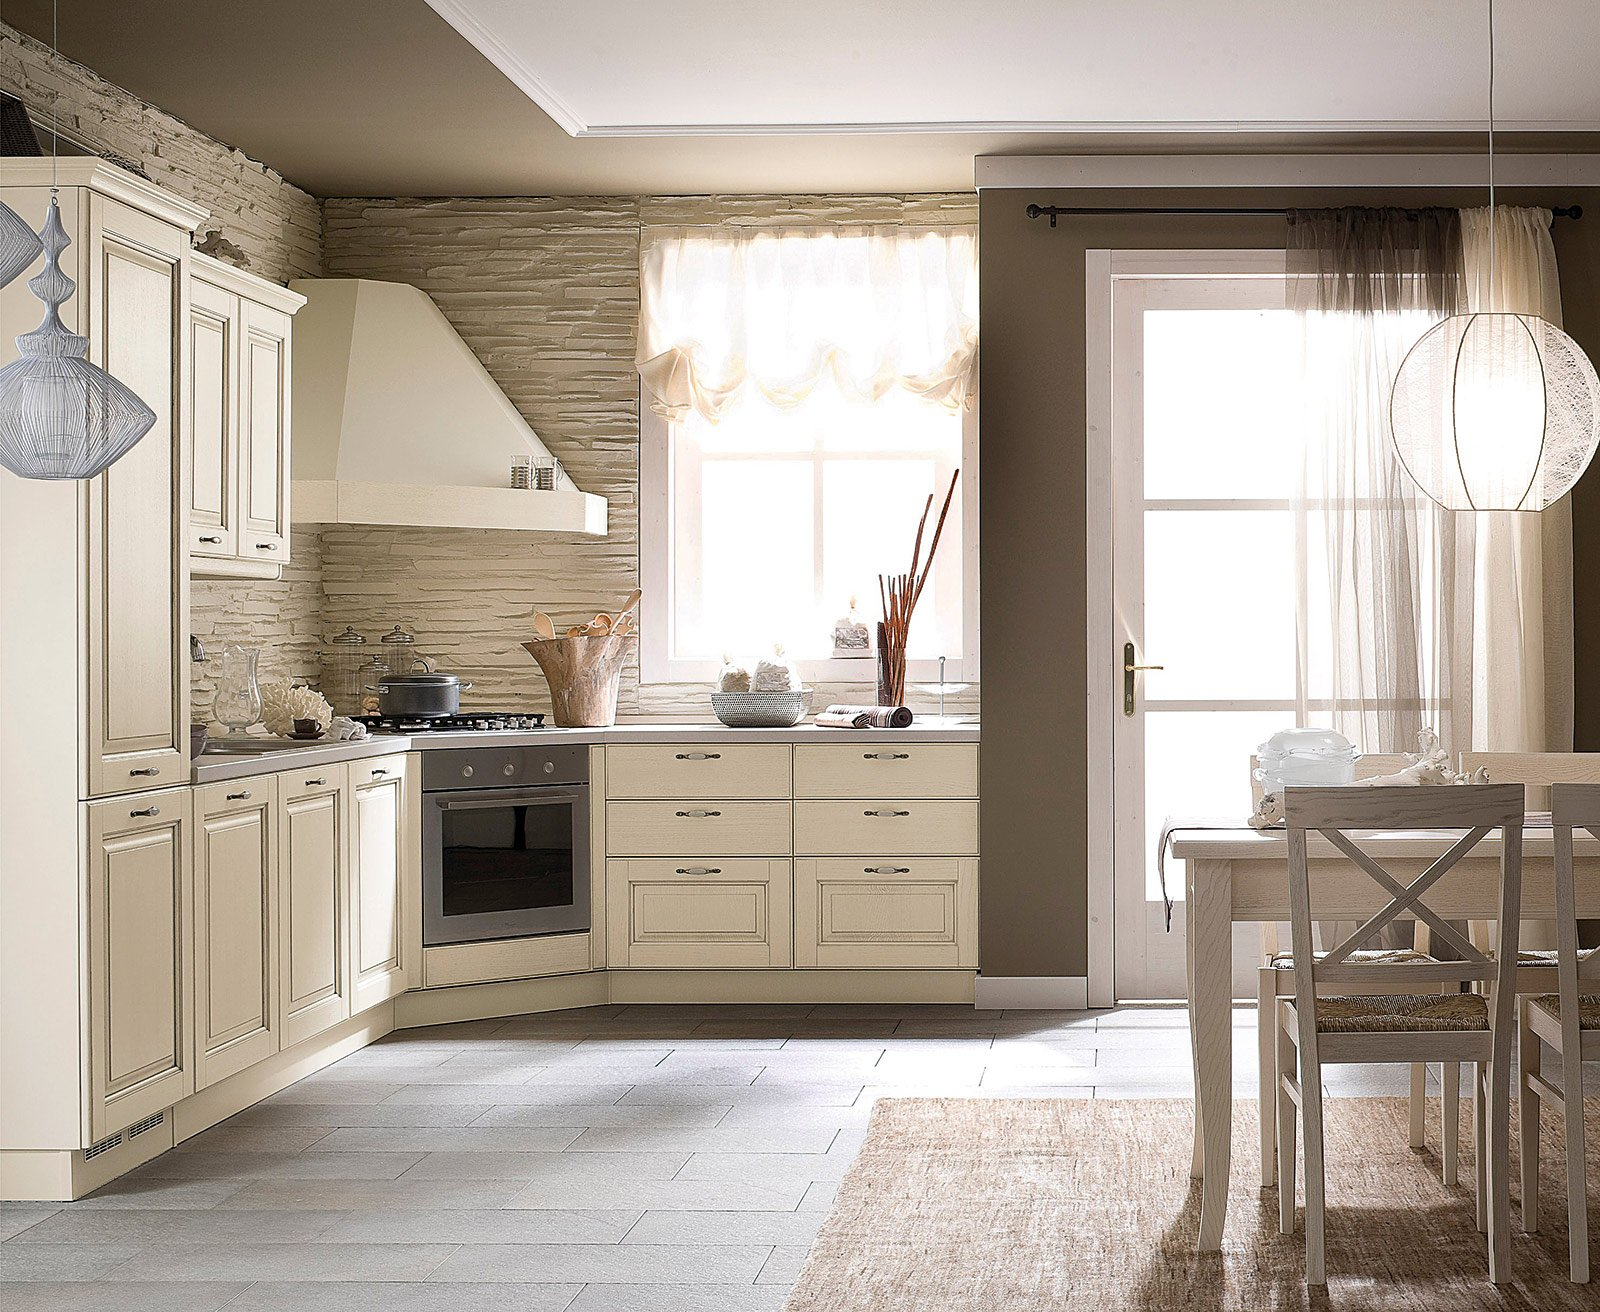 Awesome Piastrelle Per Cucina Moderna Bianca Pictures - Ideas ...